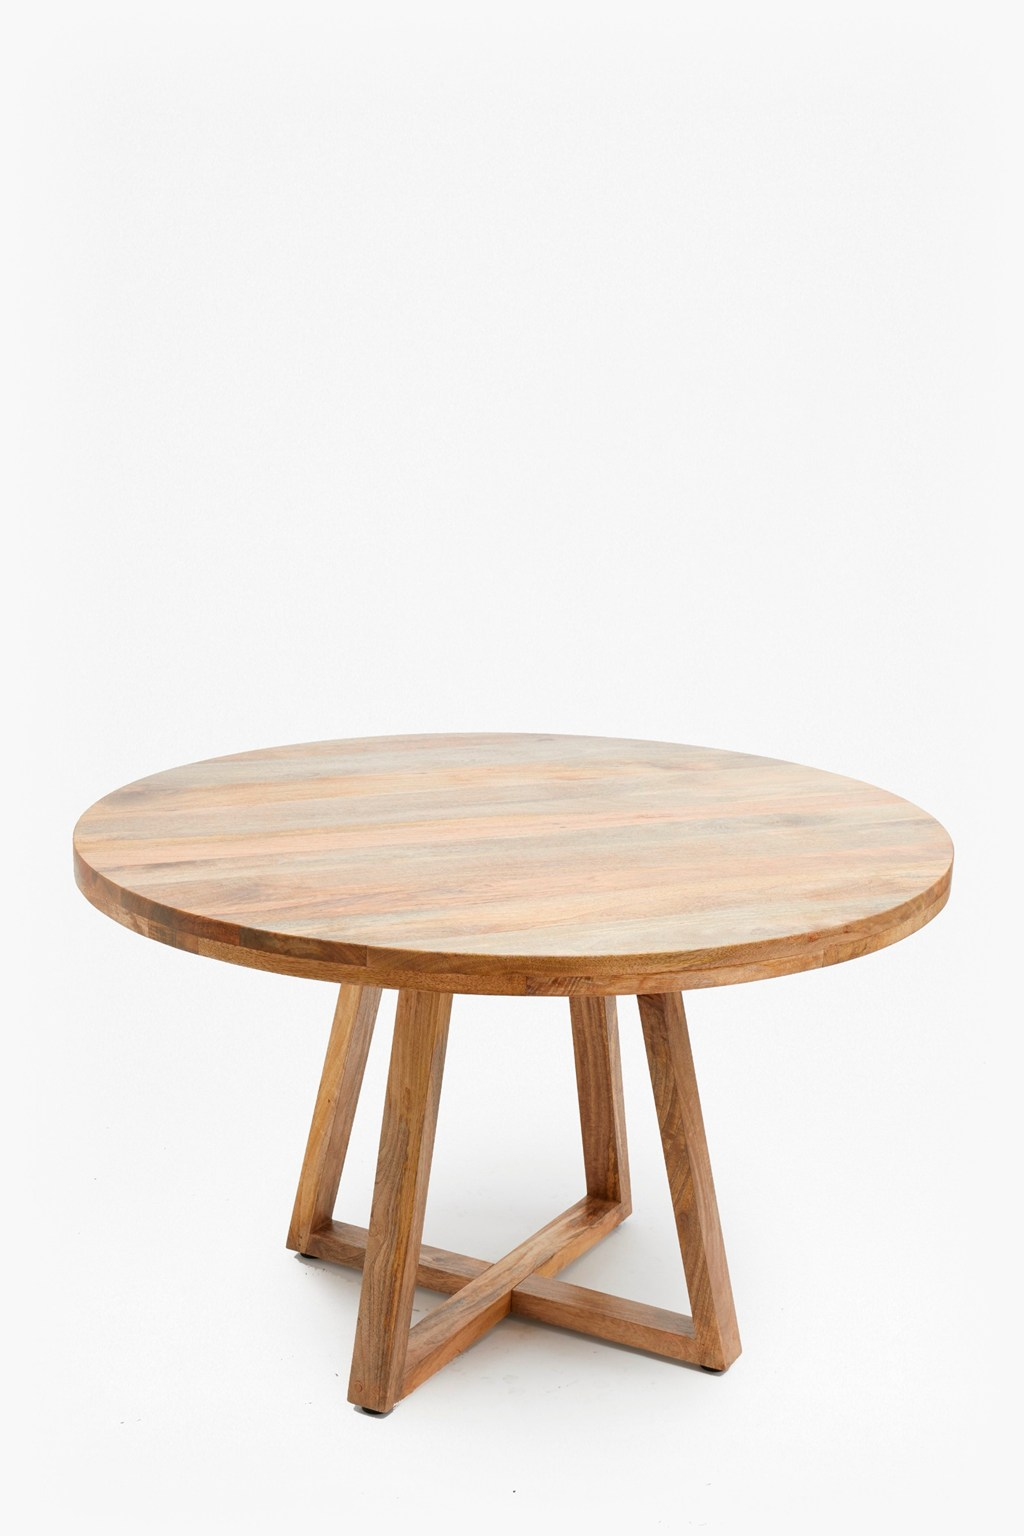 Round Wooden Dining Table Collection French Connection